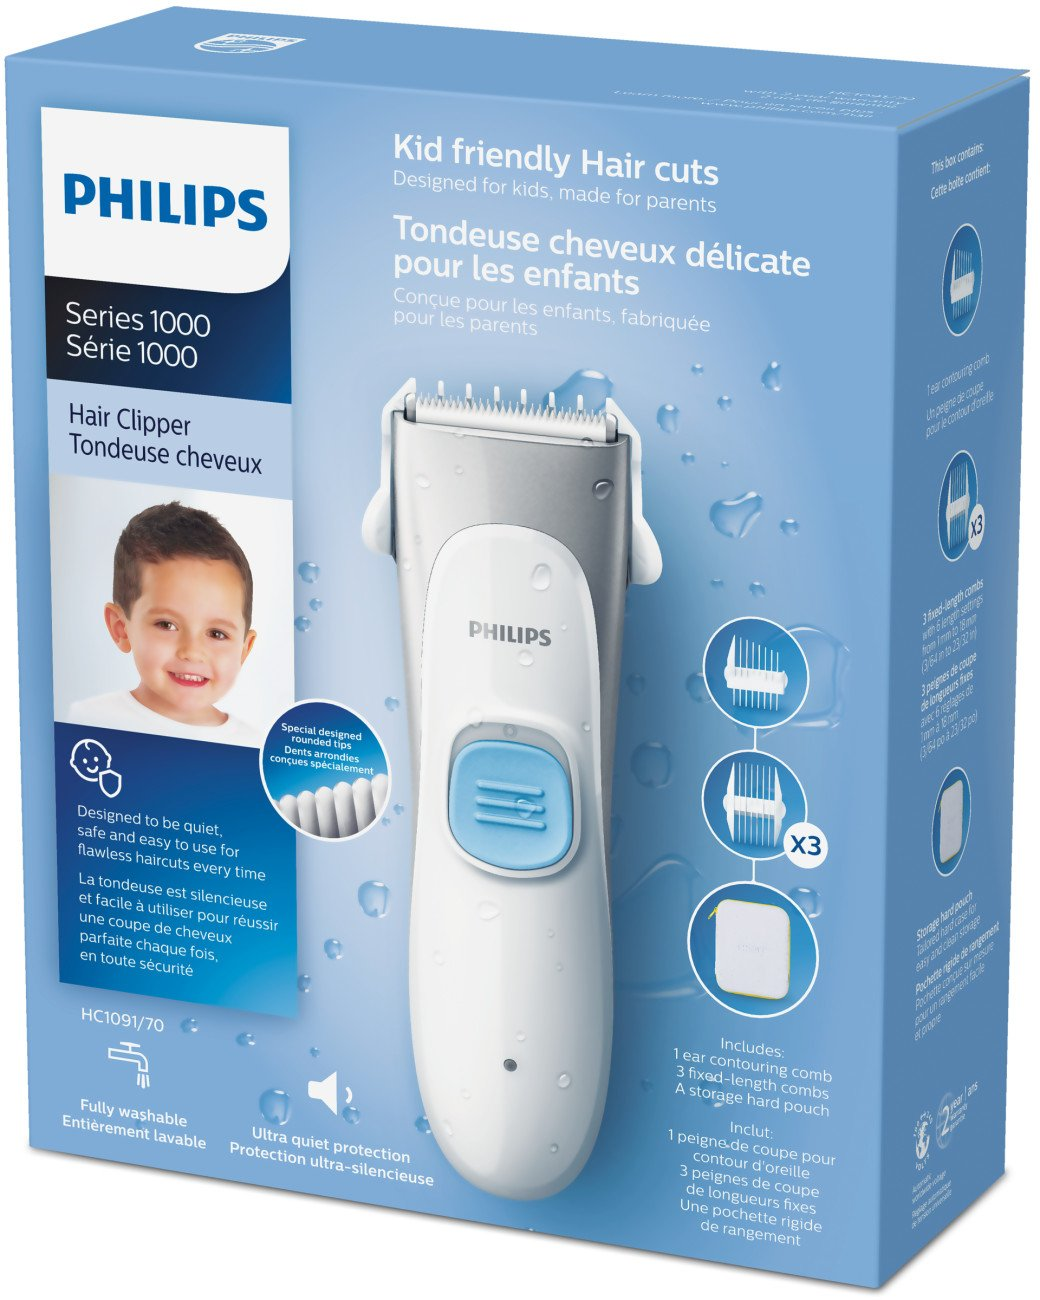 Philips Kids Hair Clipper HC1091/70 - child safe, ultra quiet by Philips Norelco (Image #12)